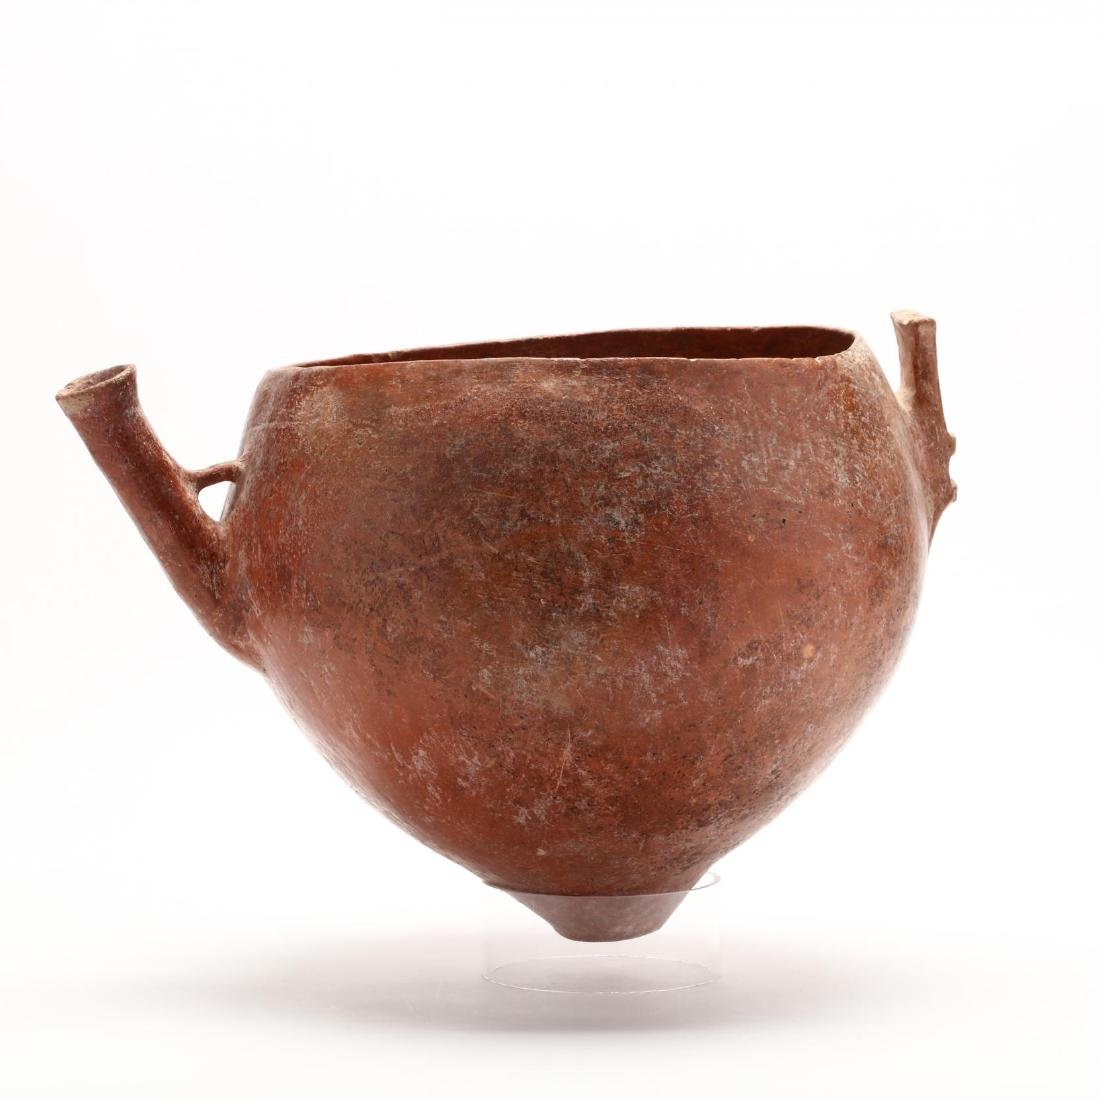 Cypriot Bronze Age Large Polished Red Ware Bowl With - 4